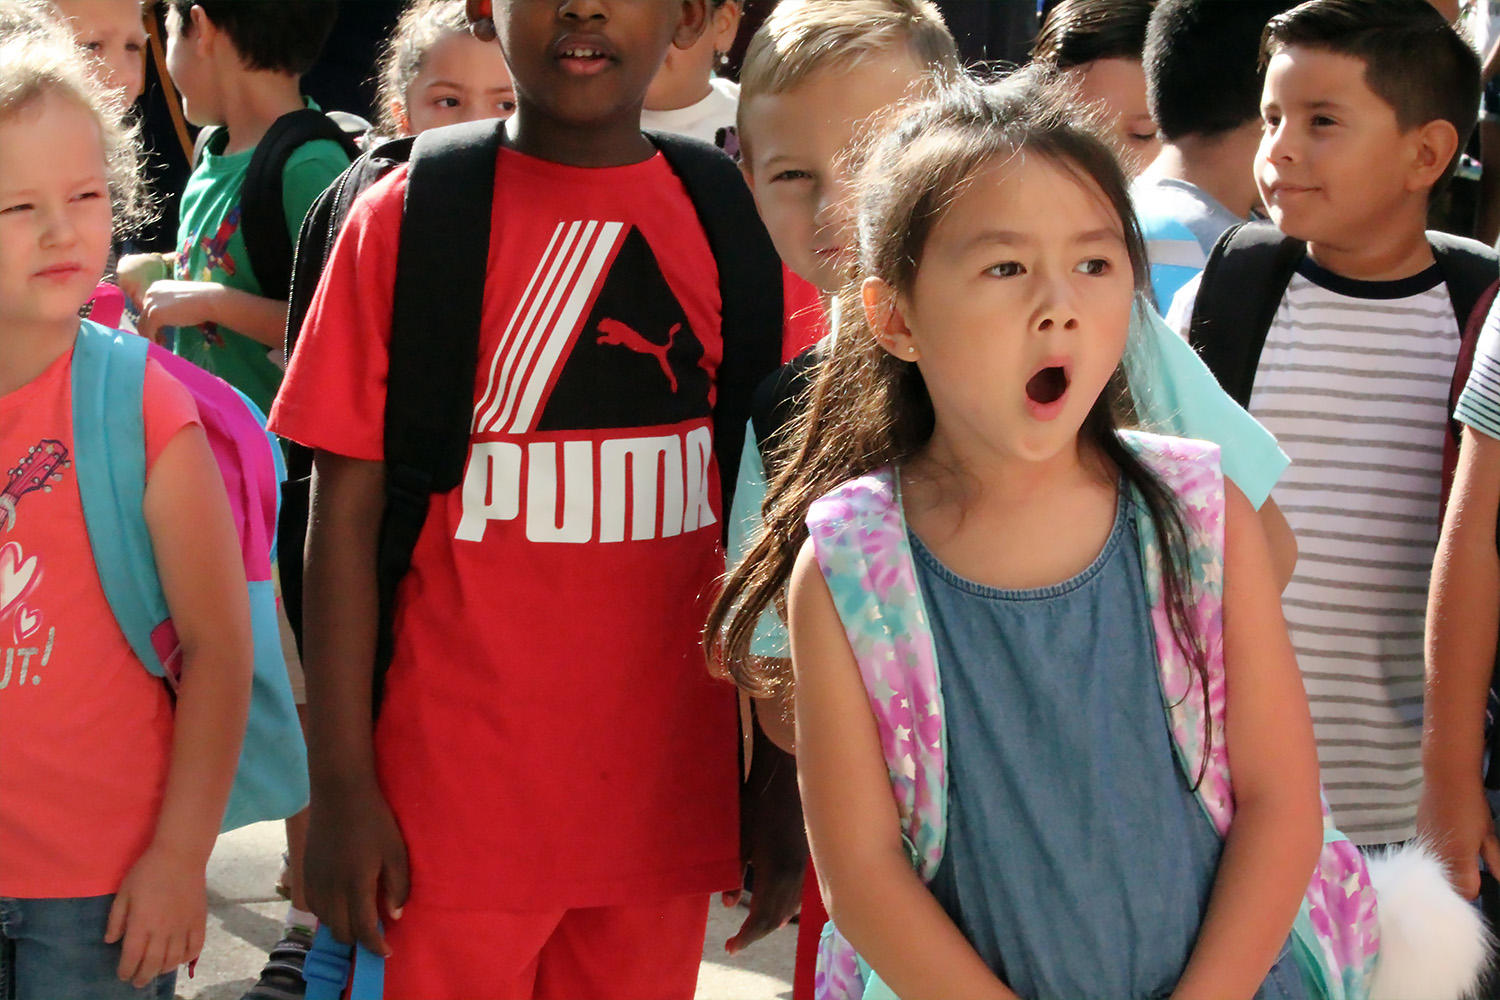 A John Mills student waits in line for the doors to open and a new school year to begin.